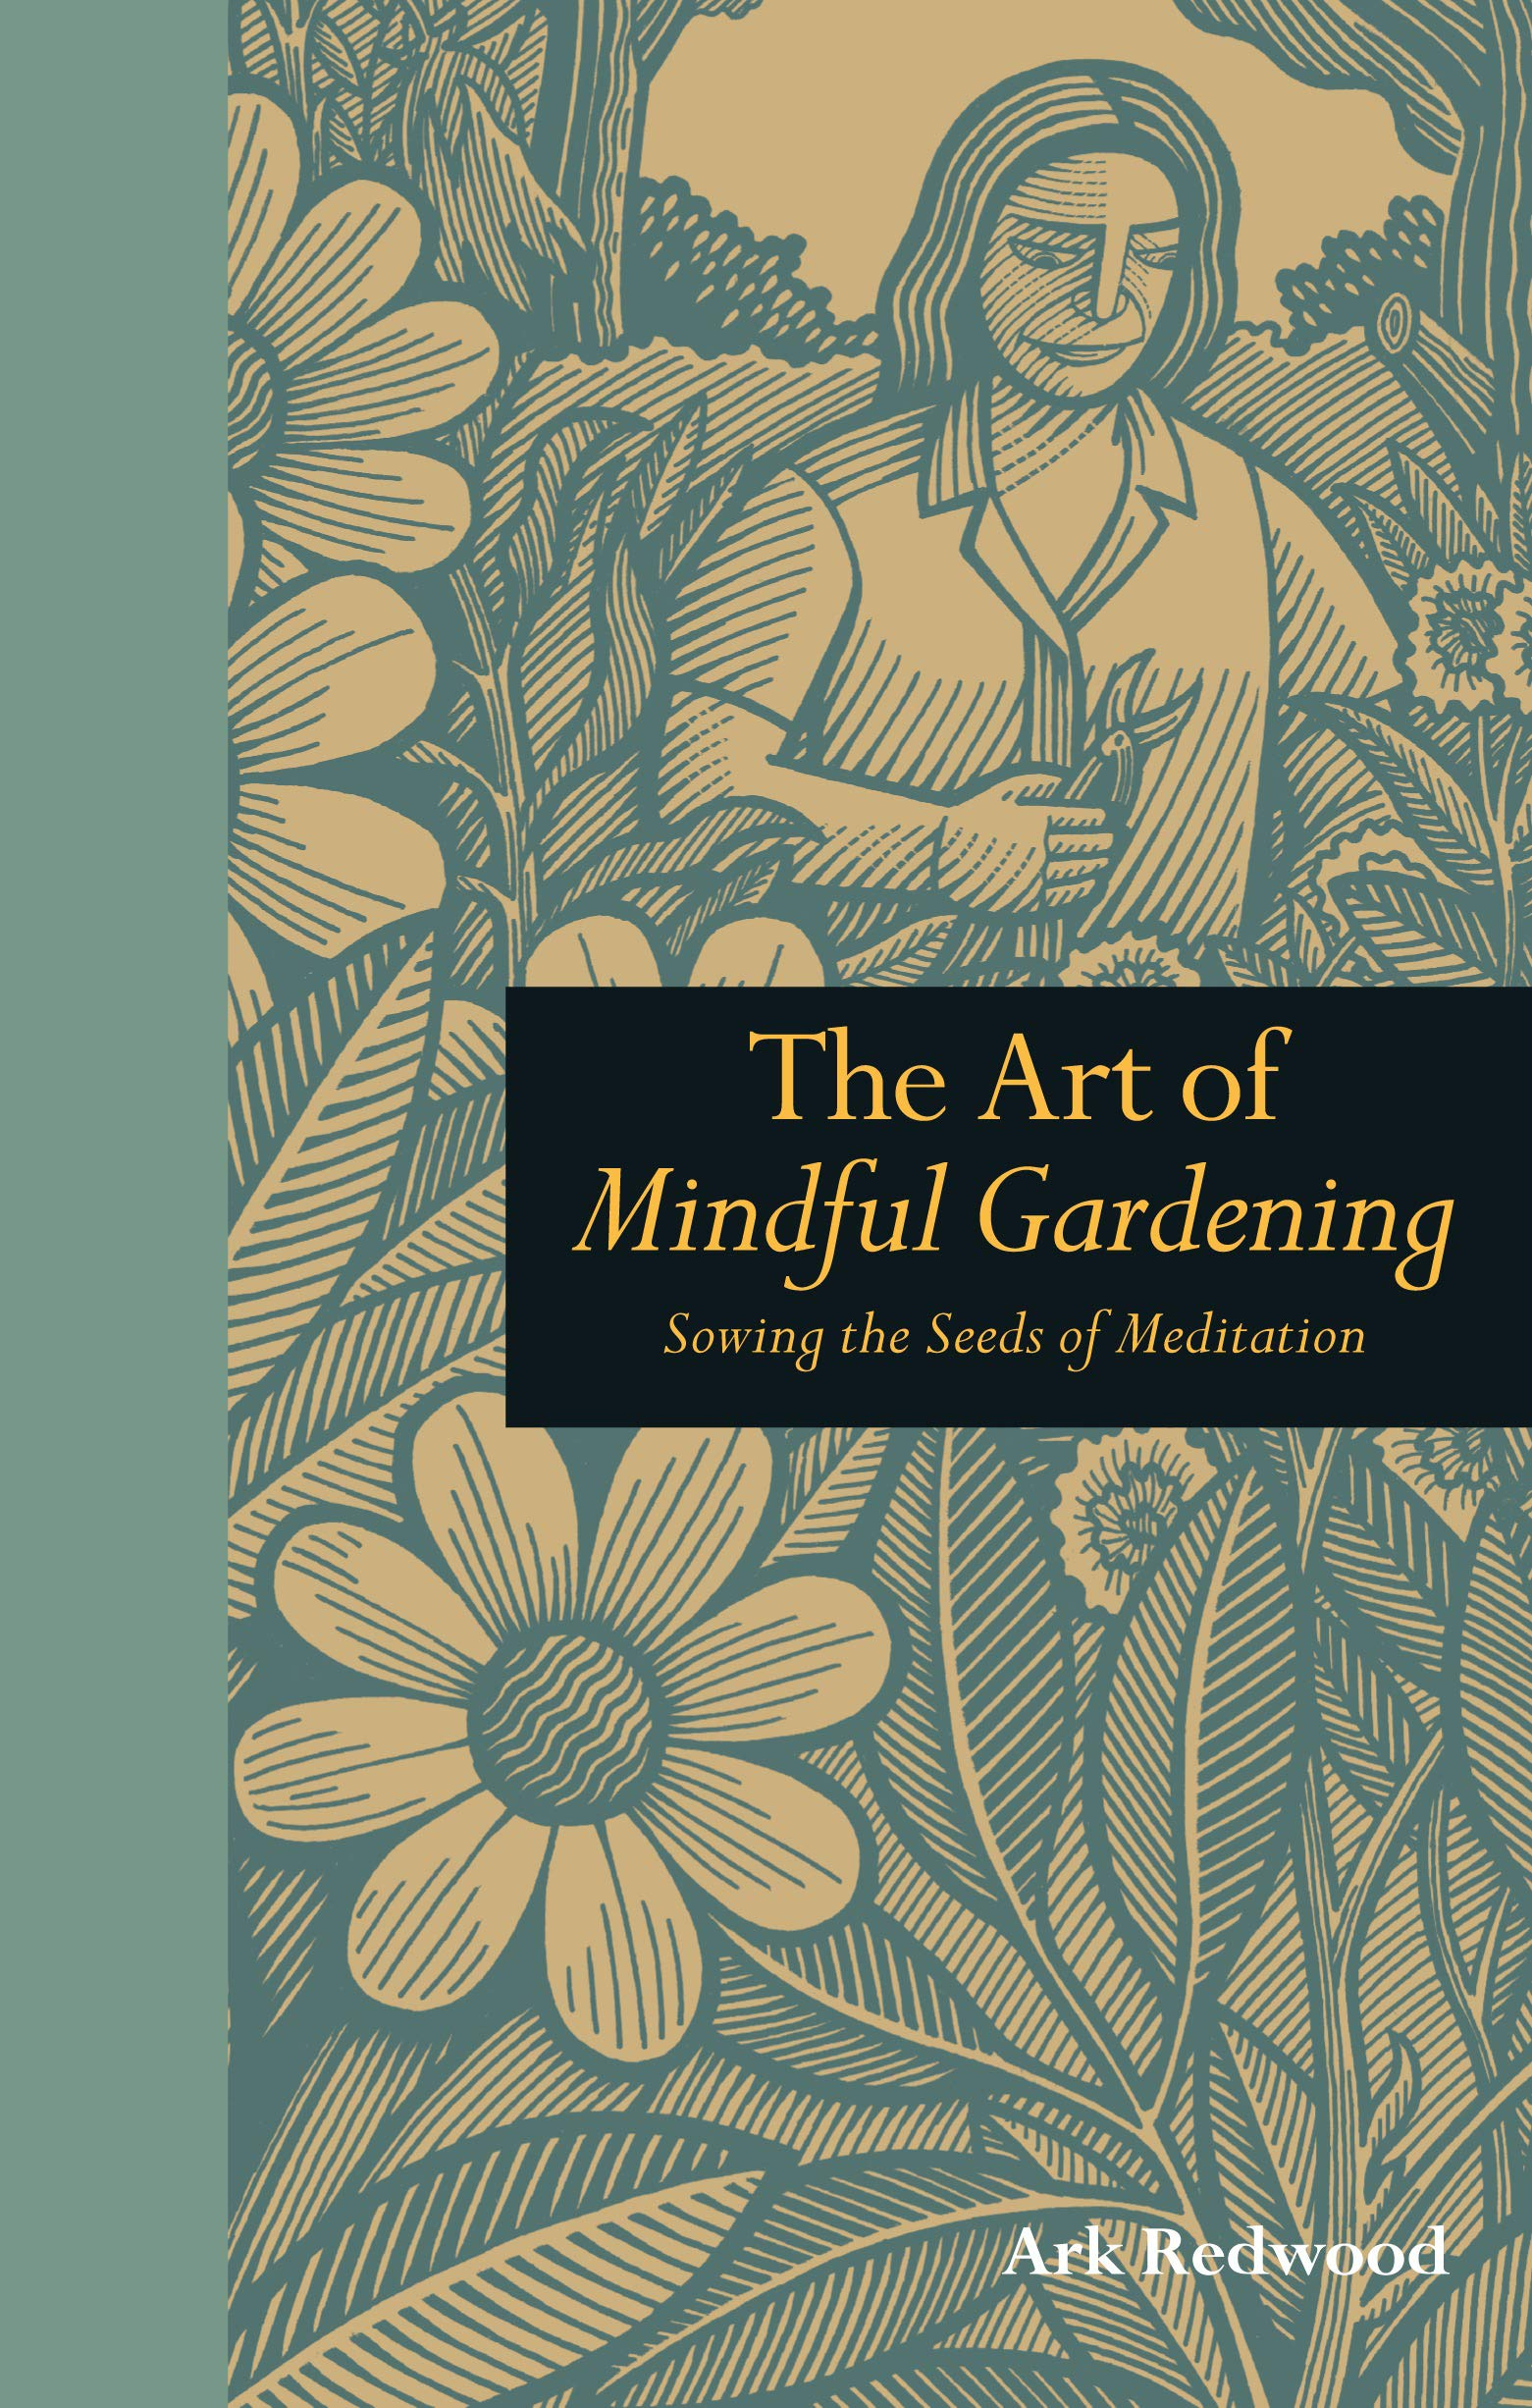 Art of Mindful Gardening: Sowing the Seeds of Meditation pdf